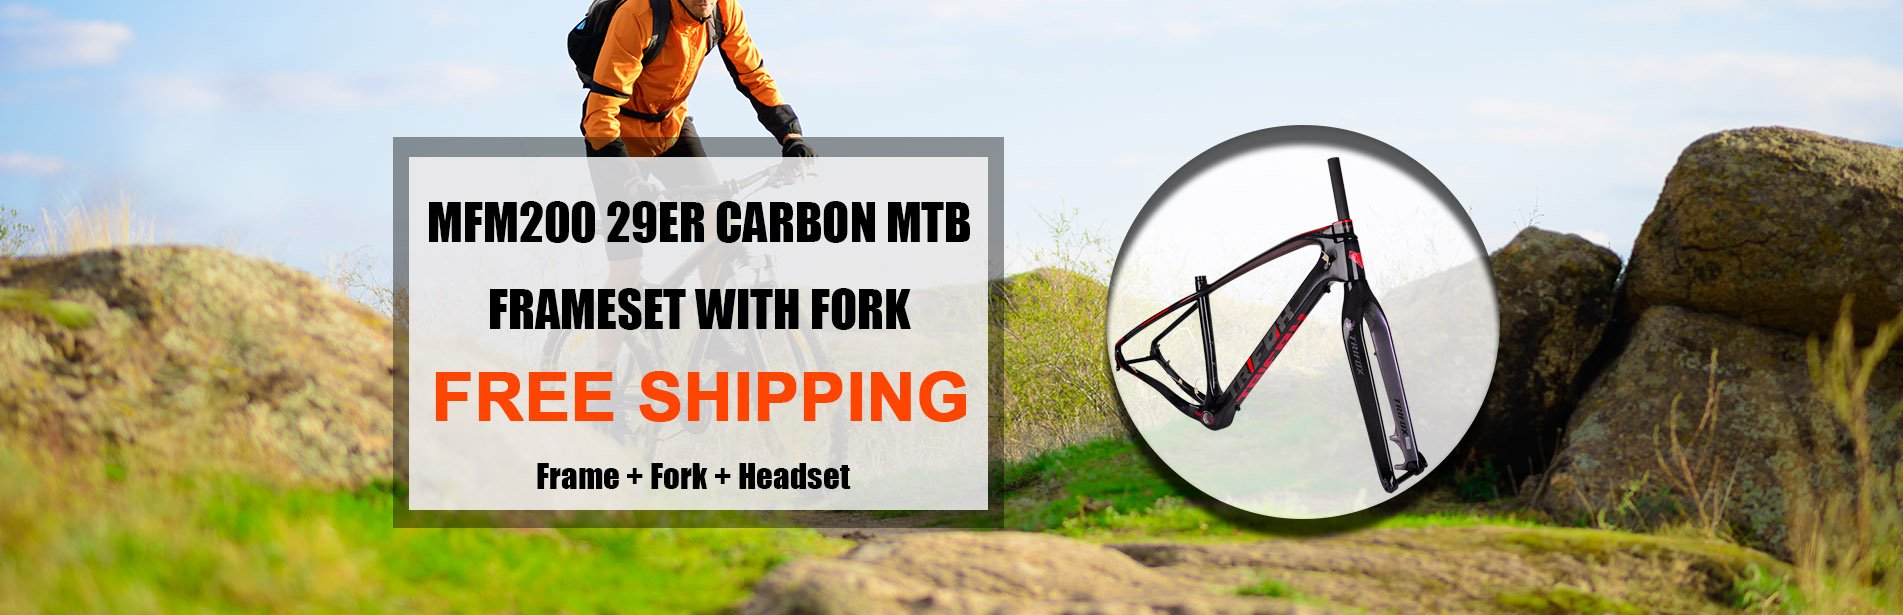 MFM200 Carbon Hard Trail MTB Frameset with fork